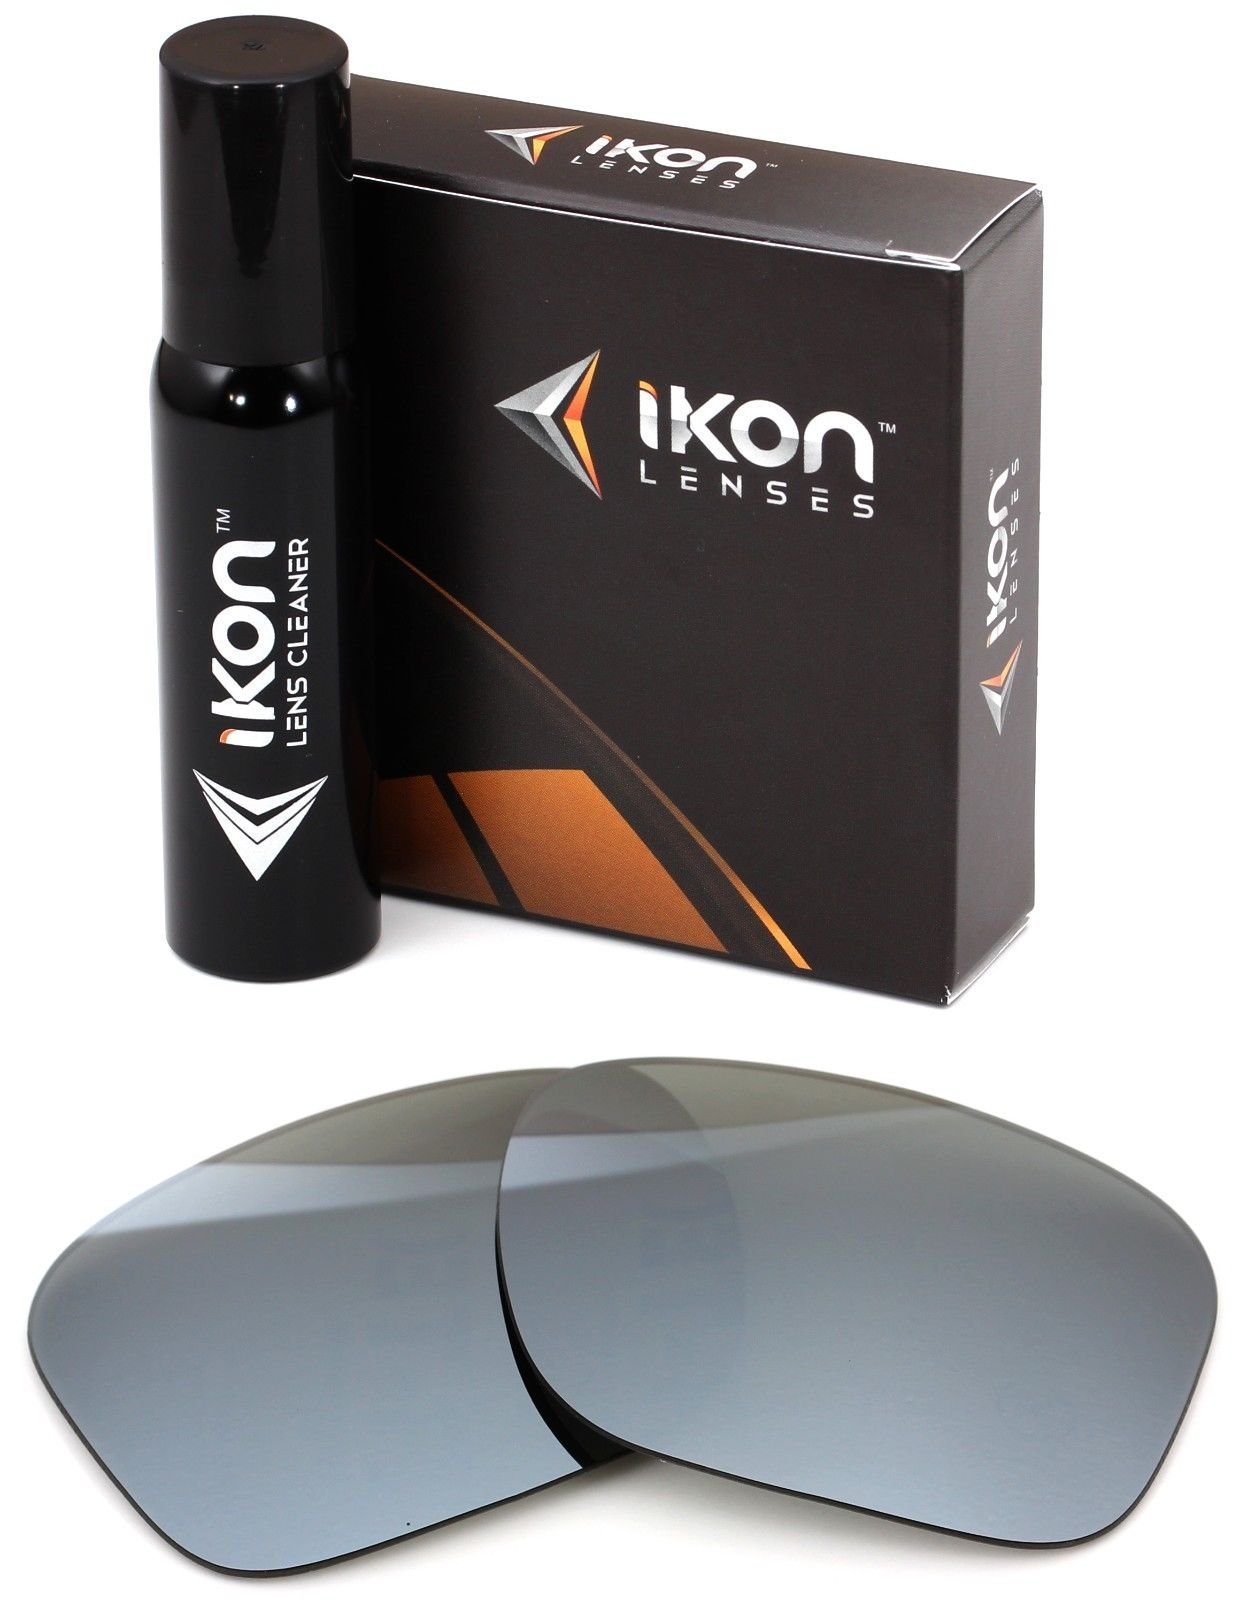 Polarized Ikon Iridium Replacement Lenses for Oakley Holbrook Sunglasses - Silver Chrome Mirror by Ikon Lenses